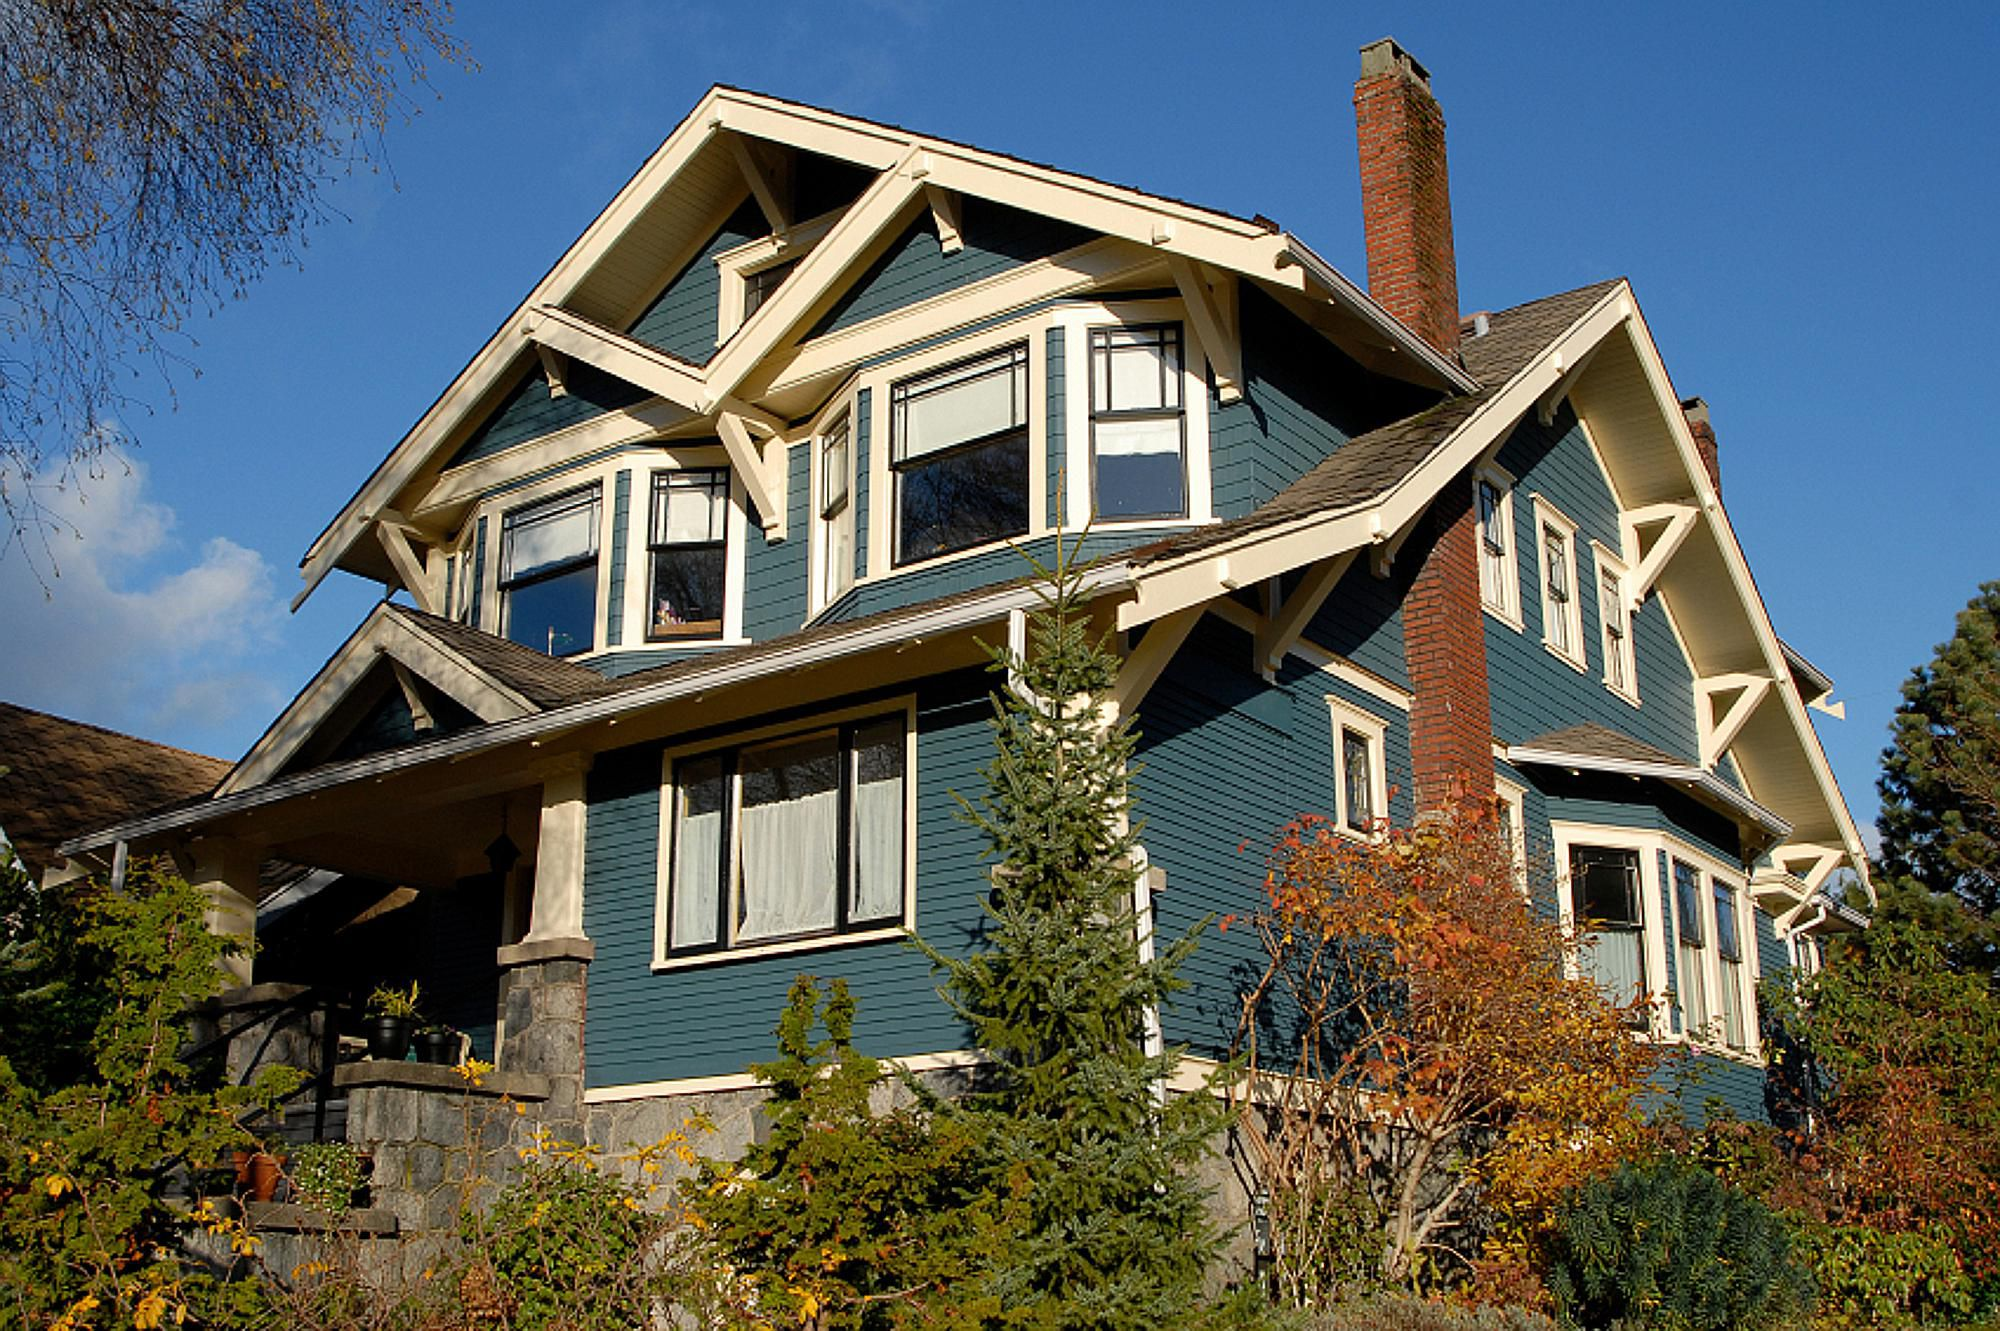 Craftsman house photos inspired by arts and crafts - What is a craftsman style house ...